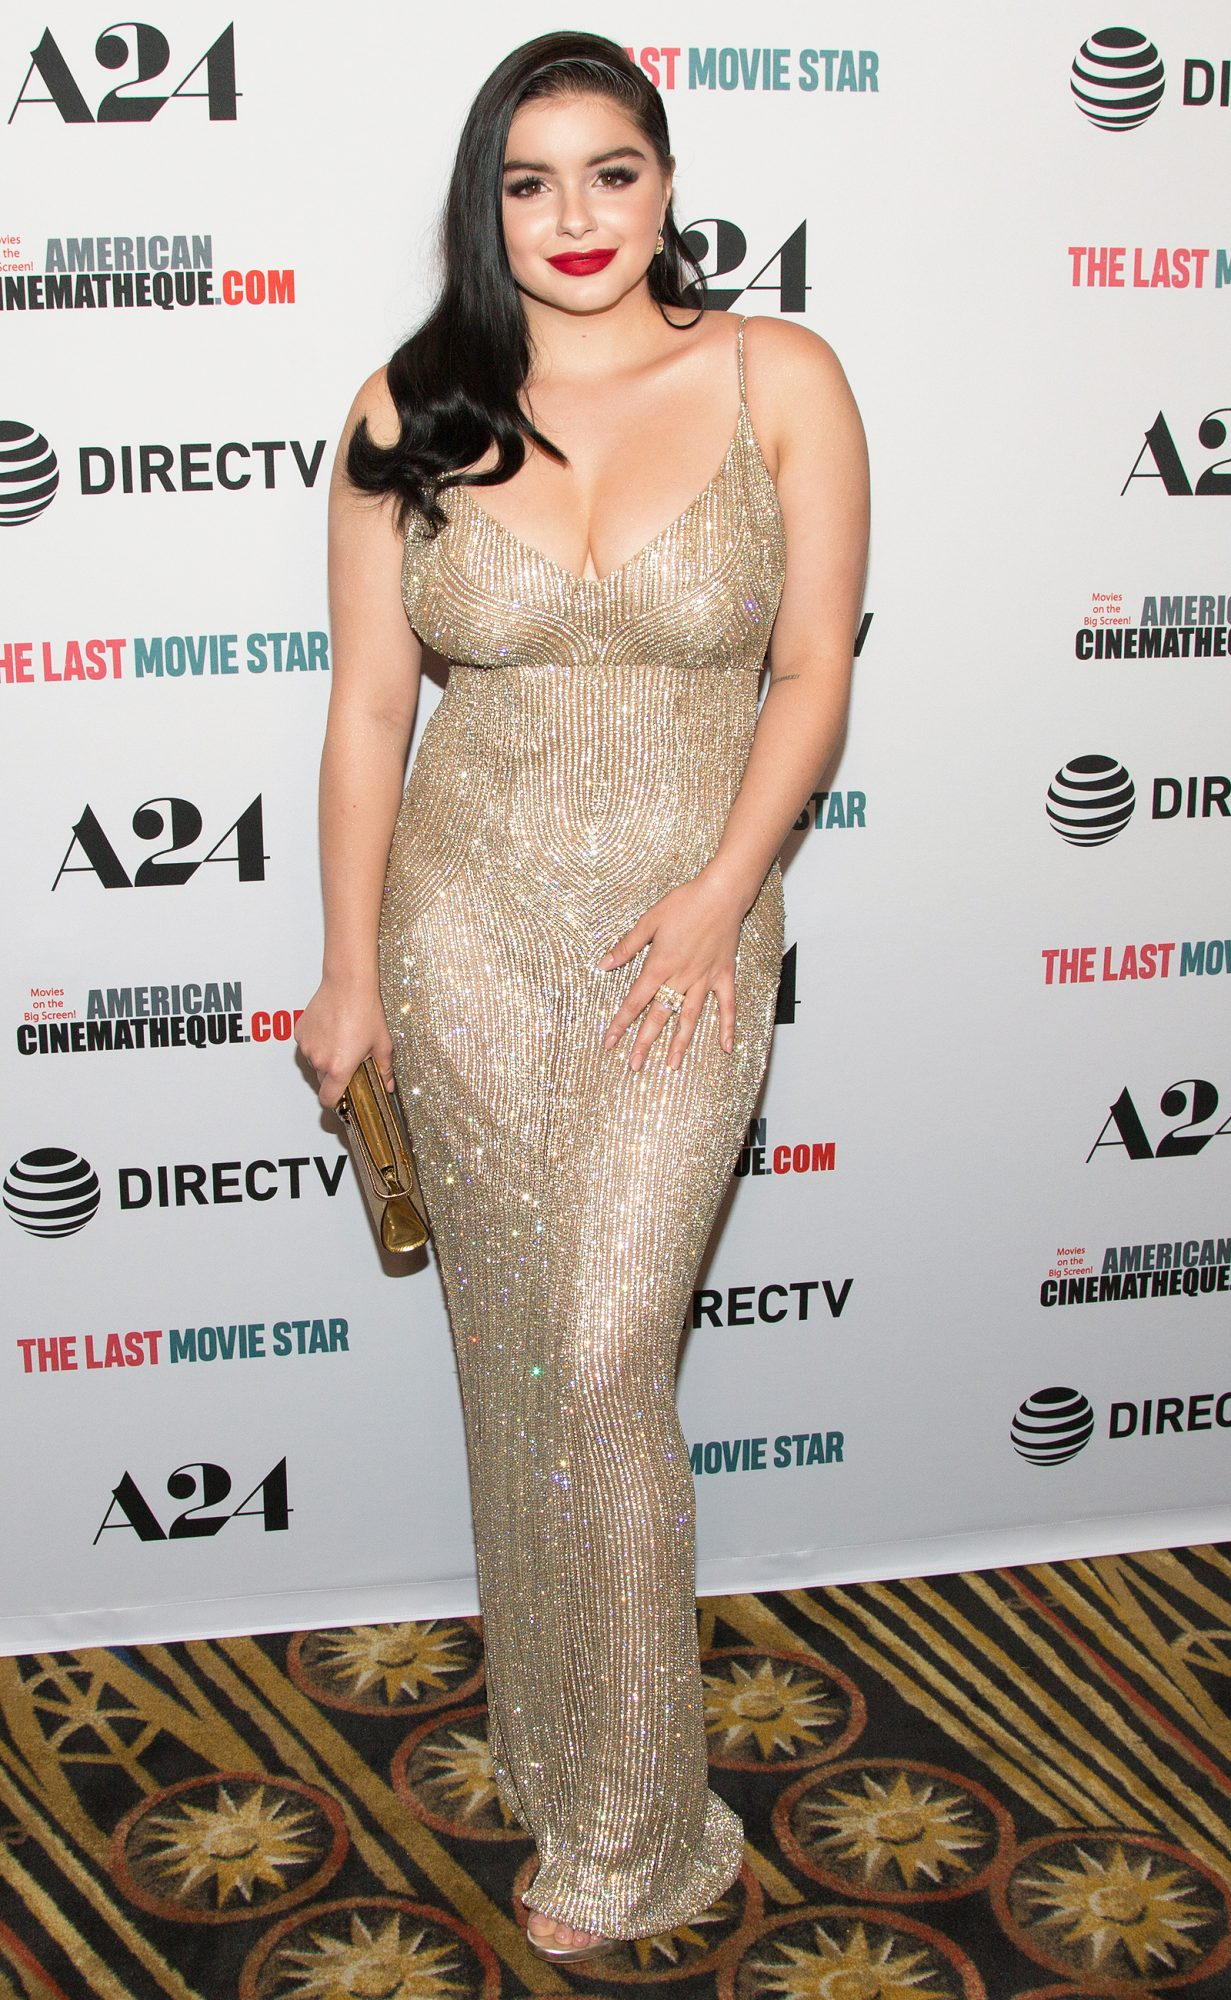 """A24 And DirecTV's """"The Last Movie Star"""" Premiere - Arrivals"""